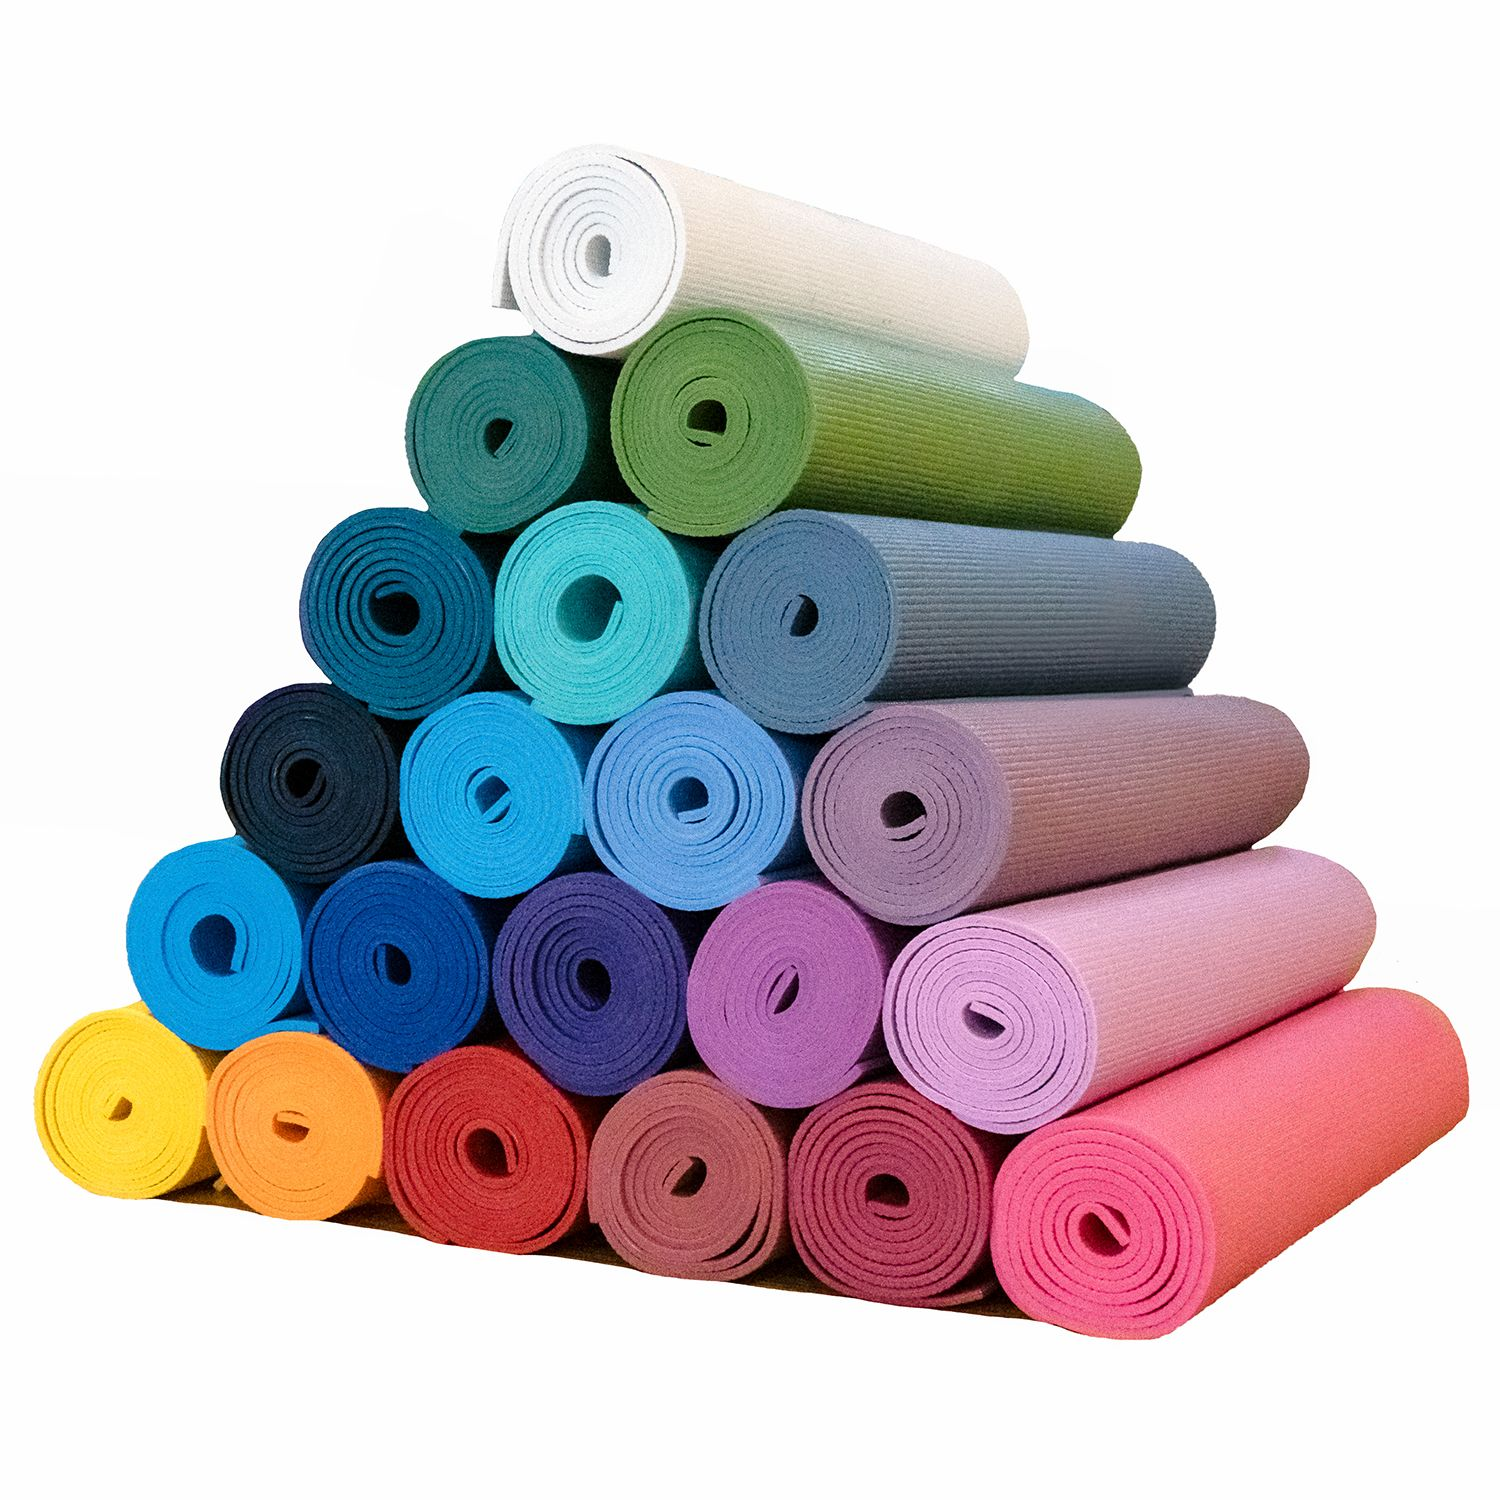 Yoga Accessories 1 4 Extra Thick Deluxe Yoga Mat Yoga Accessories Jade Yoga Manduka Yoga Mat